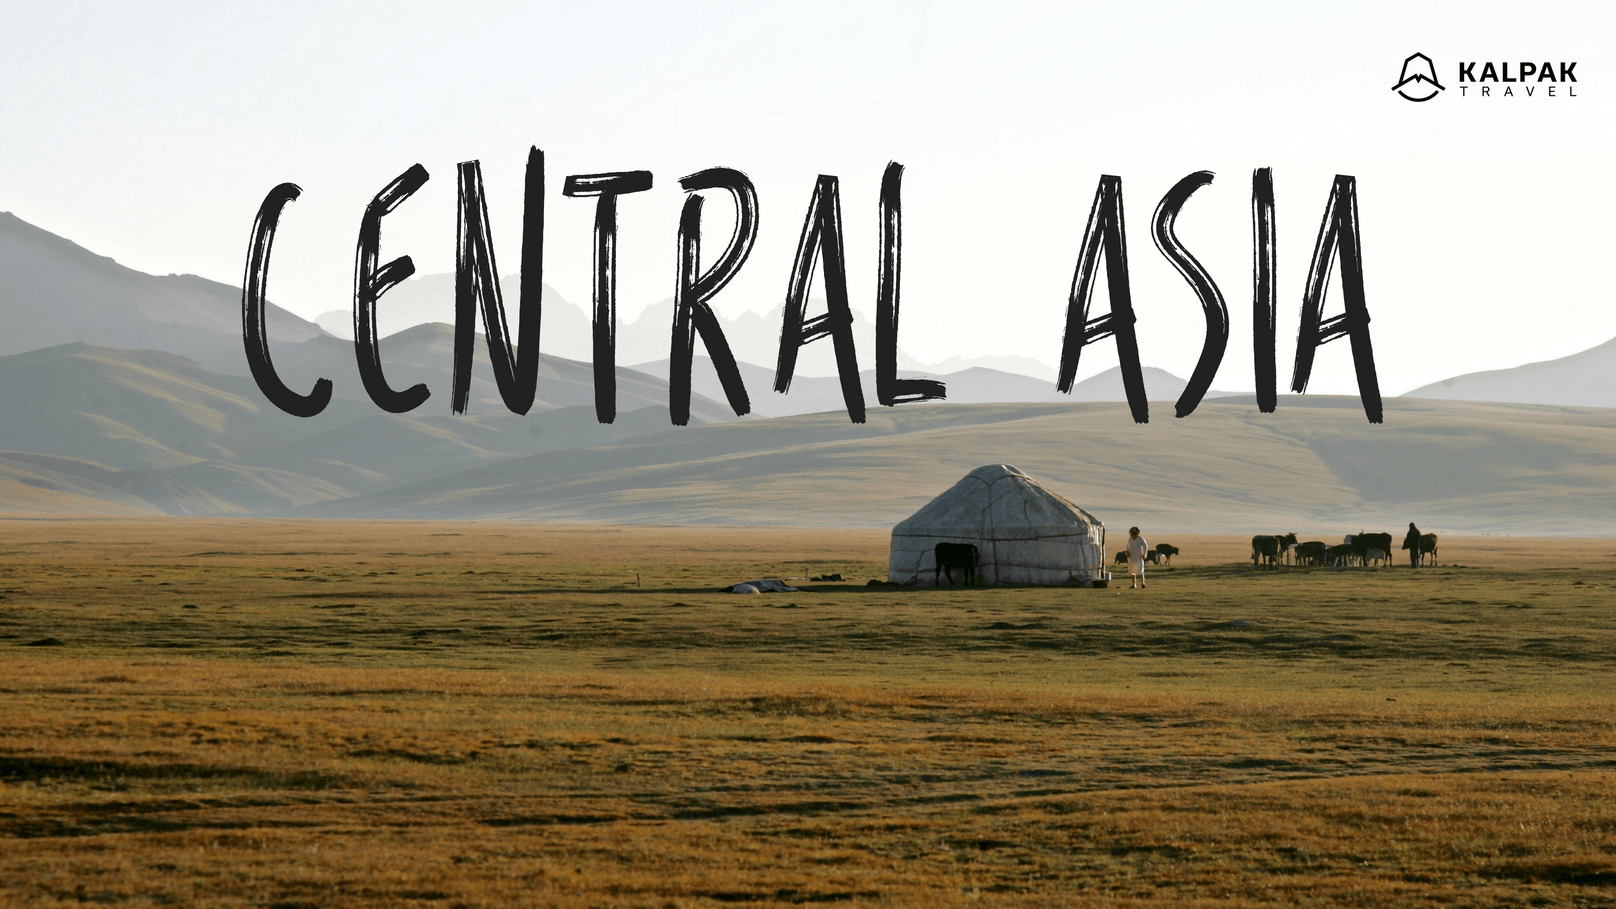 Central Asia caption on a landscape photo with a yurt